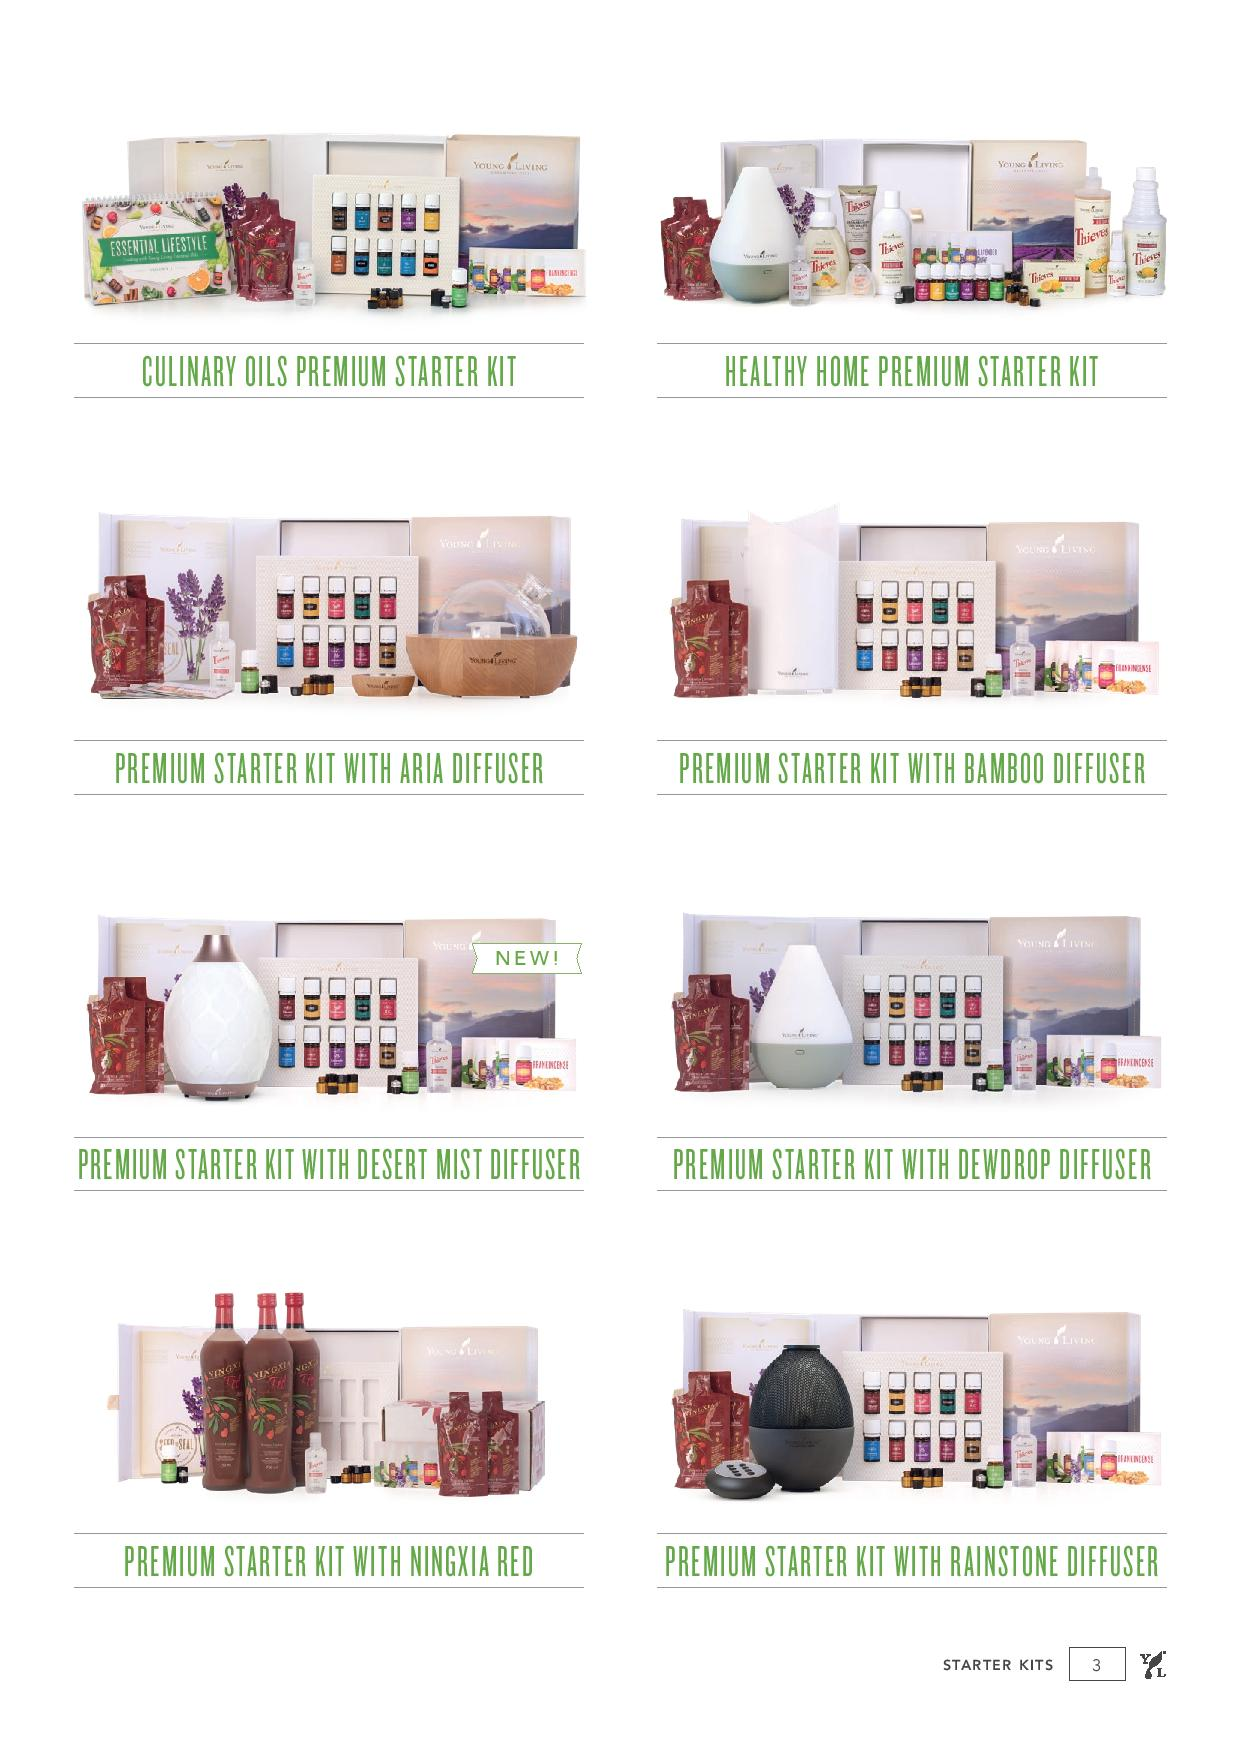 Premium Starter Kits Australia The Scentsible Tribe Kit Young Living With Desert Mist Diffuser Aus Enrol Ultimate